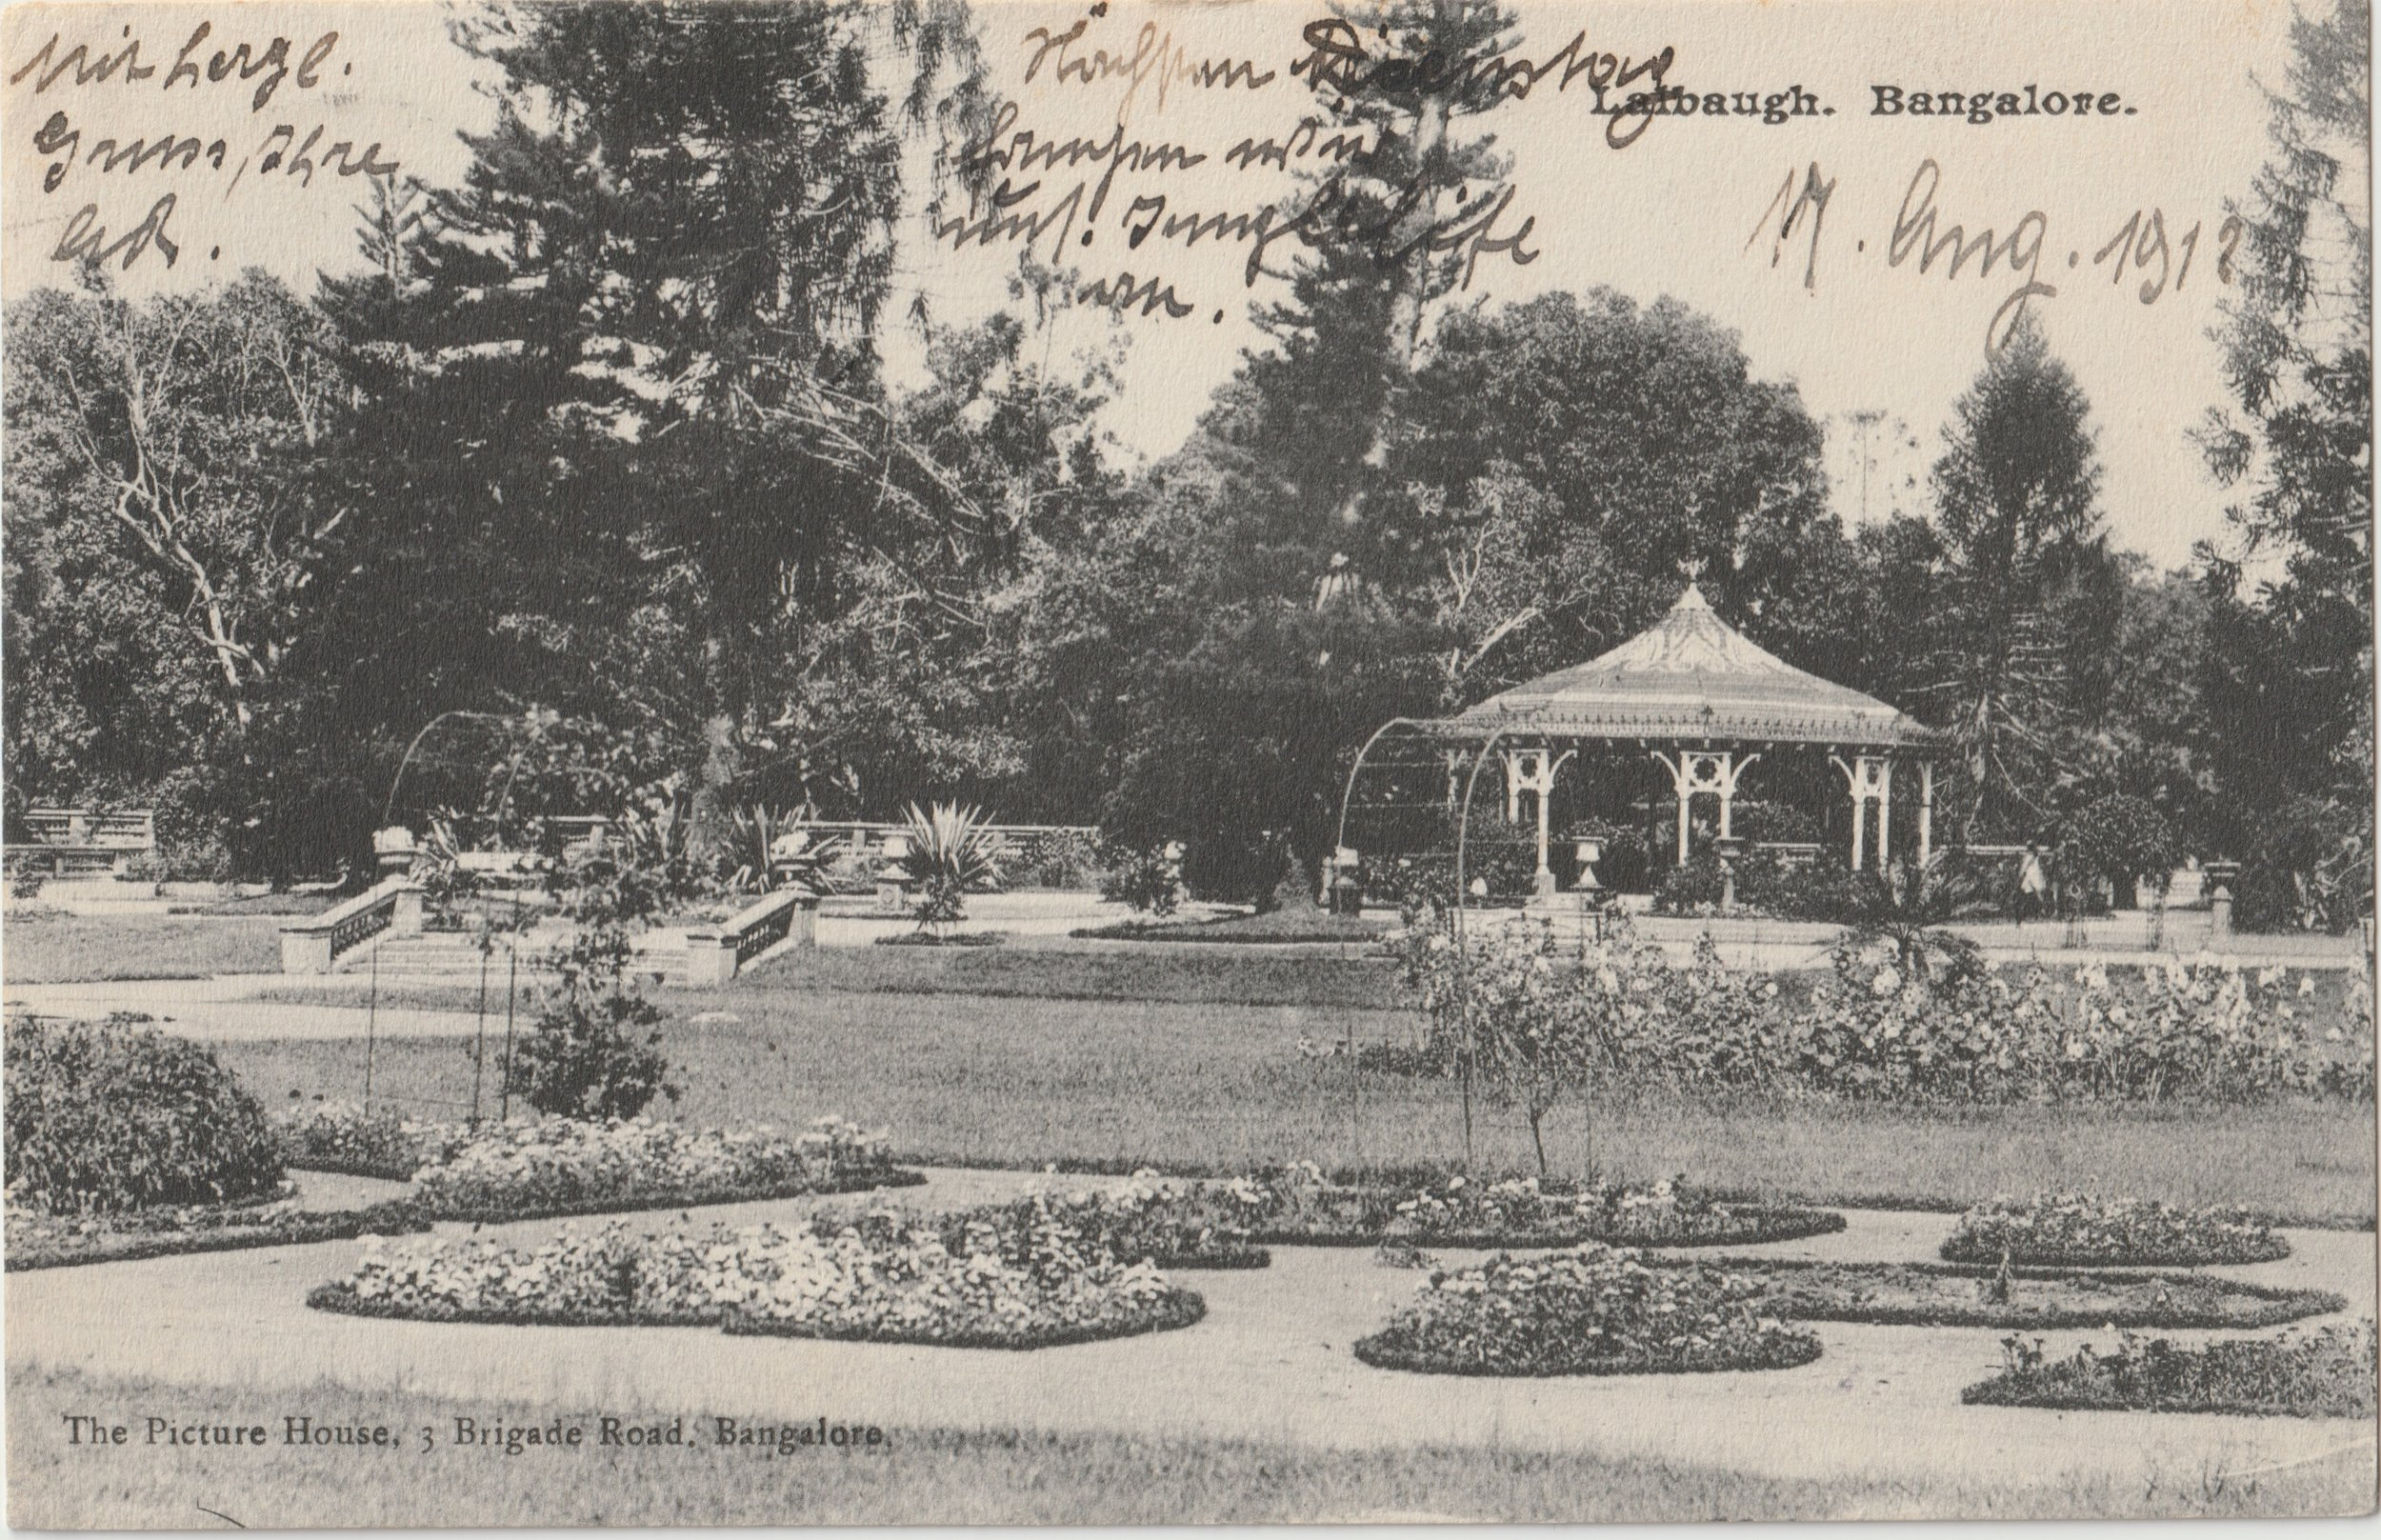 """Lalbaugh, Bangalore"". Published by The Picture House, Bangalore. Posted on: 19.08.1912."